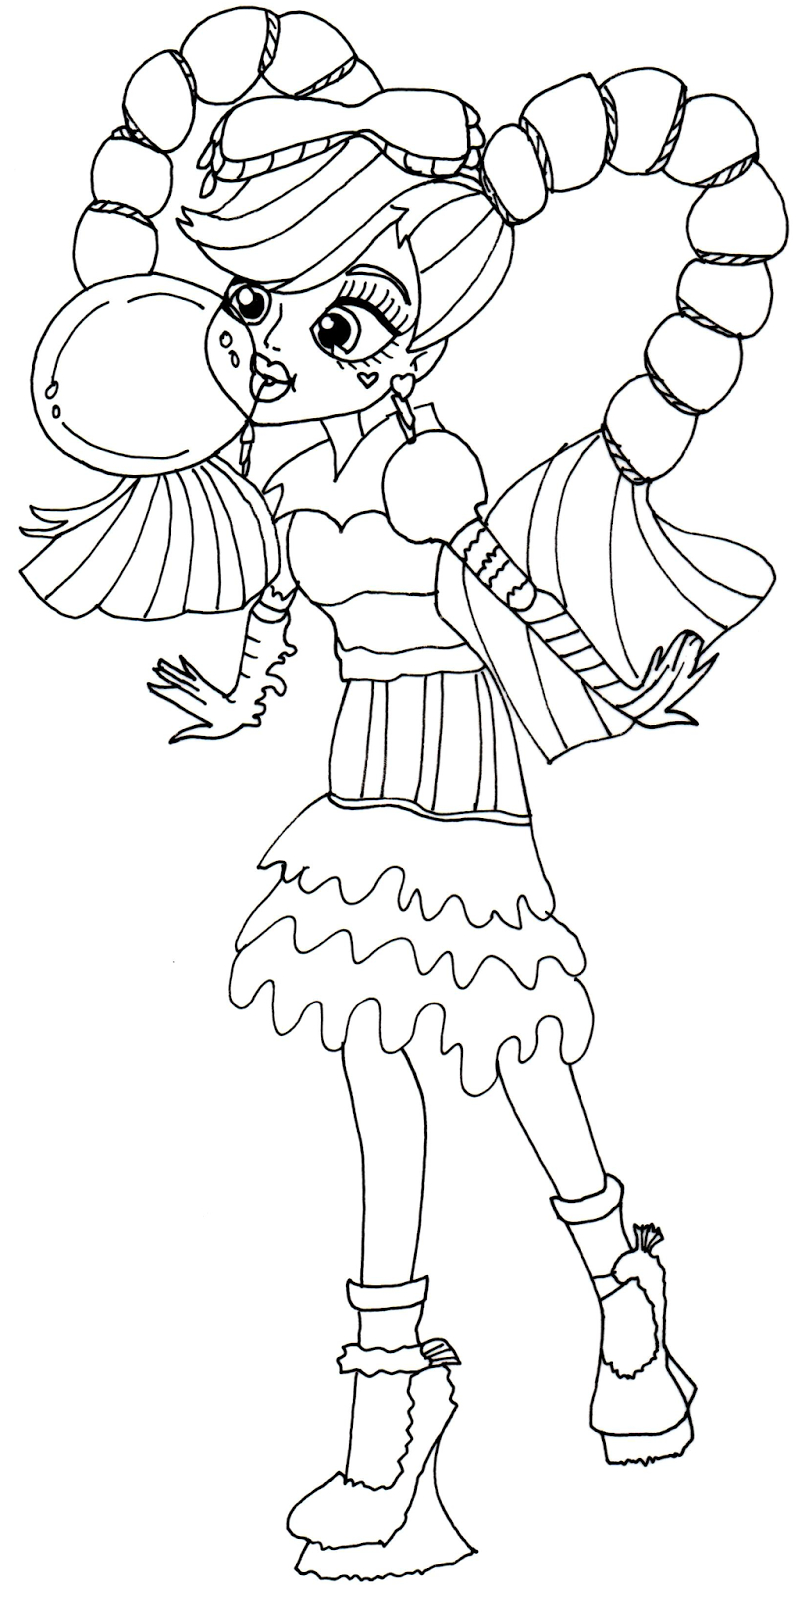 Monster High Coloring Pages Printable Monster High Coloring Pages 34 Free Printable Coloring Pages For